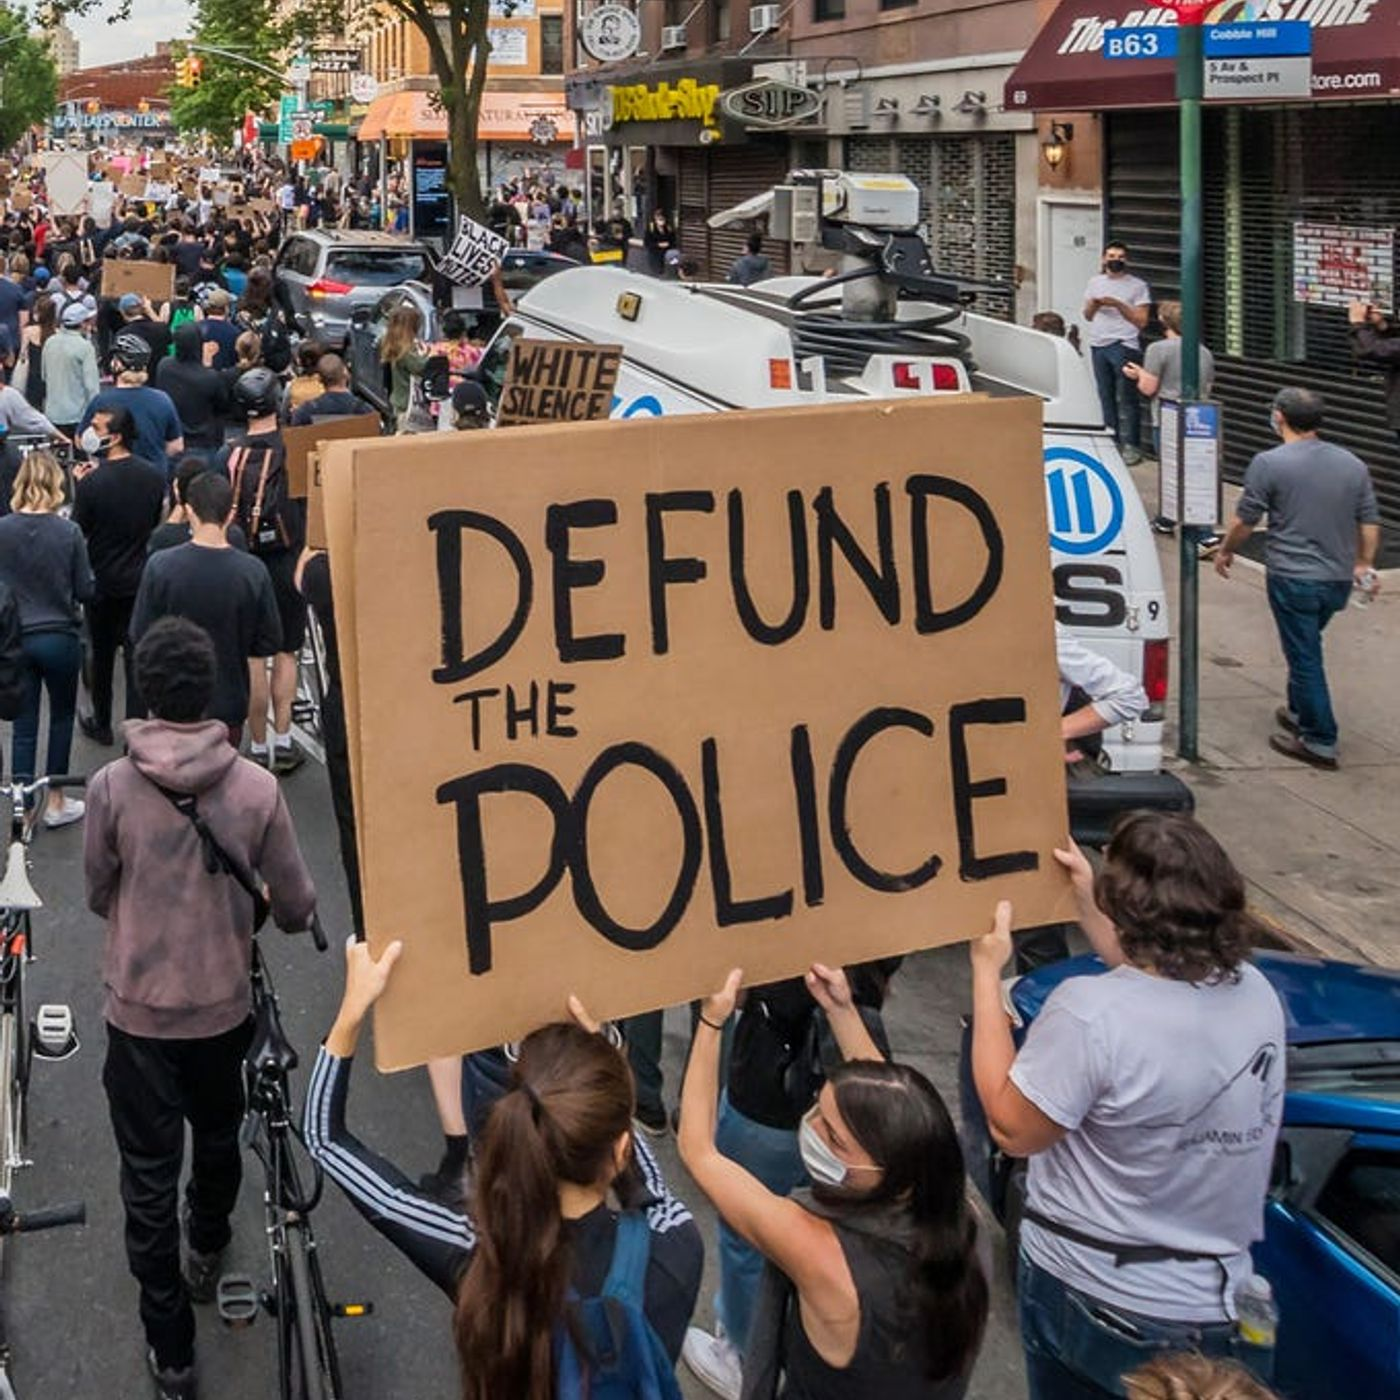 Defund the Police and Strong Delusion